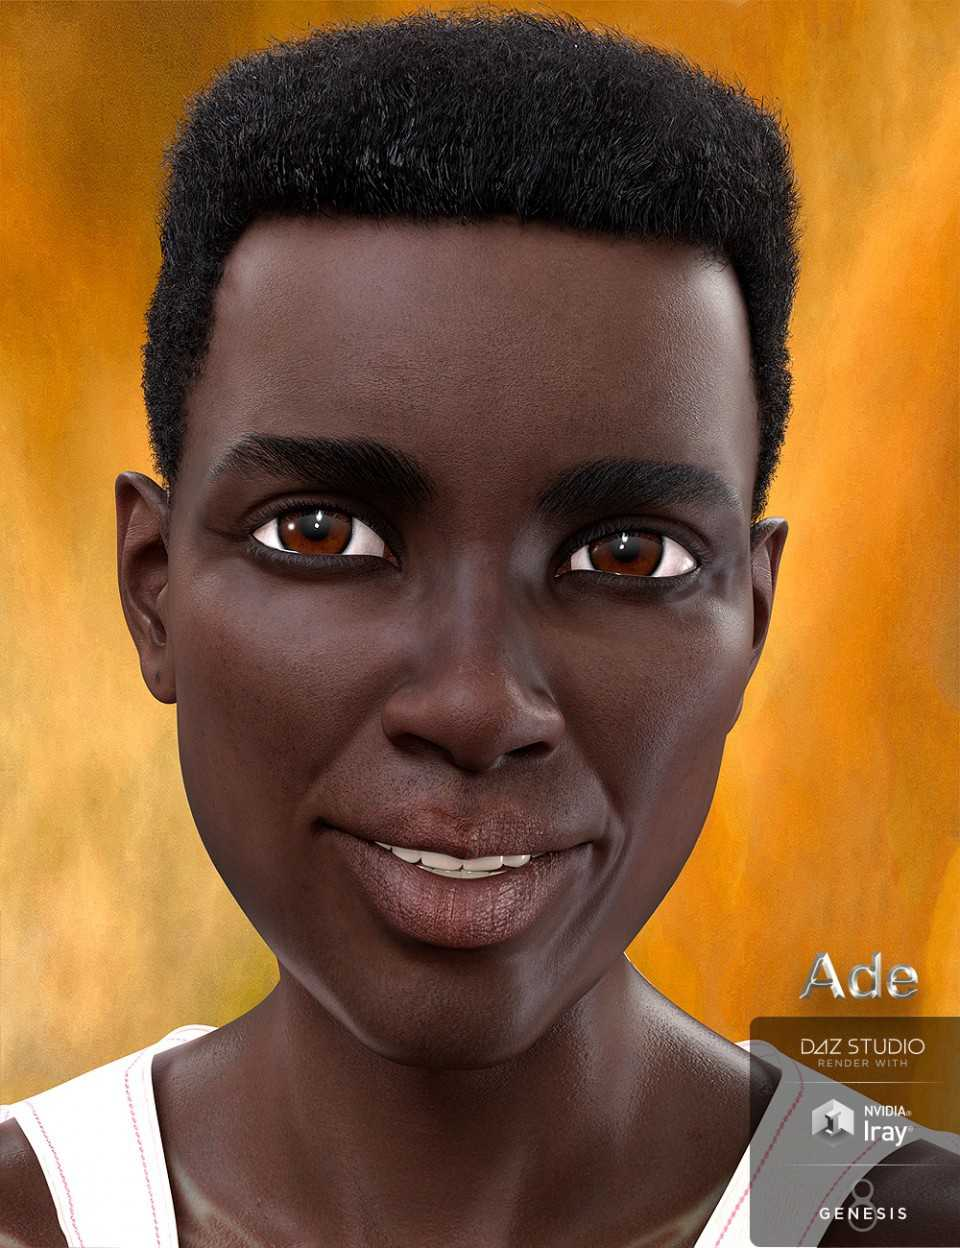 Ade for Genesis 8 Male